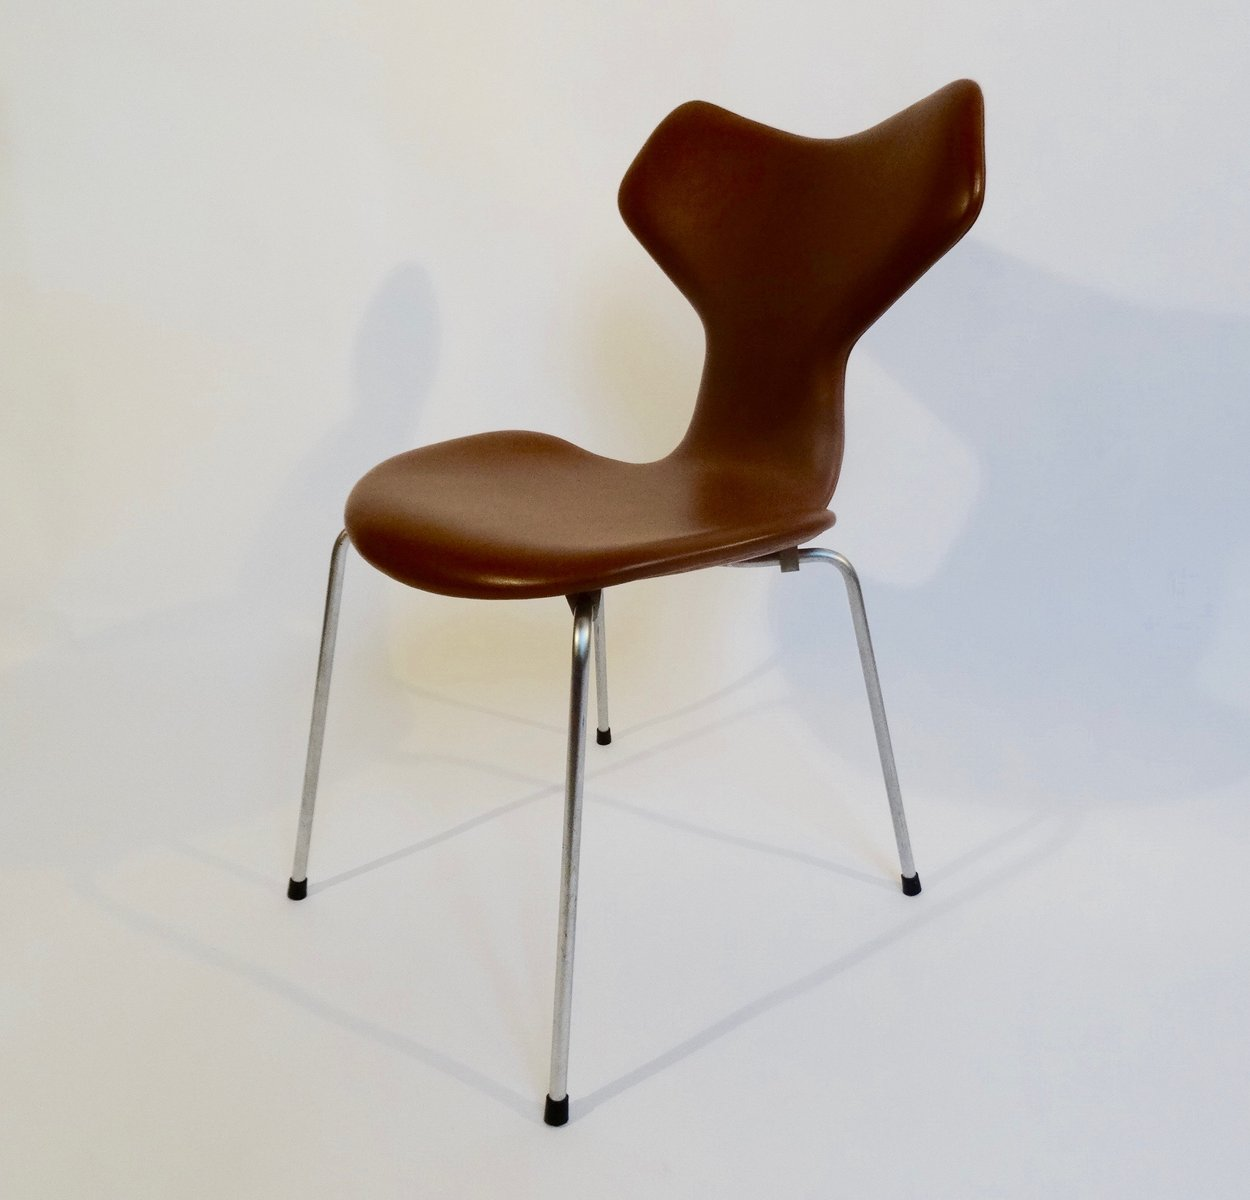 grand prix chair by arne jacobsen for fritz hansen 1964 for sale at pamono. Black Bedroom Furniture Sets. Home Design Ideas